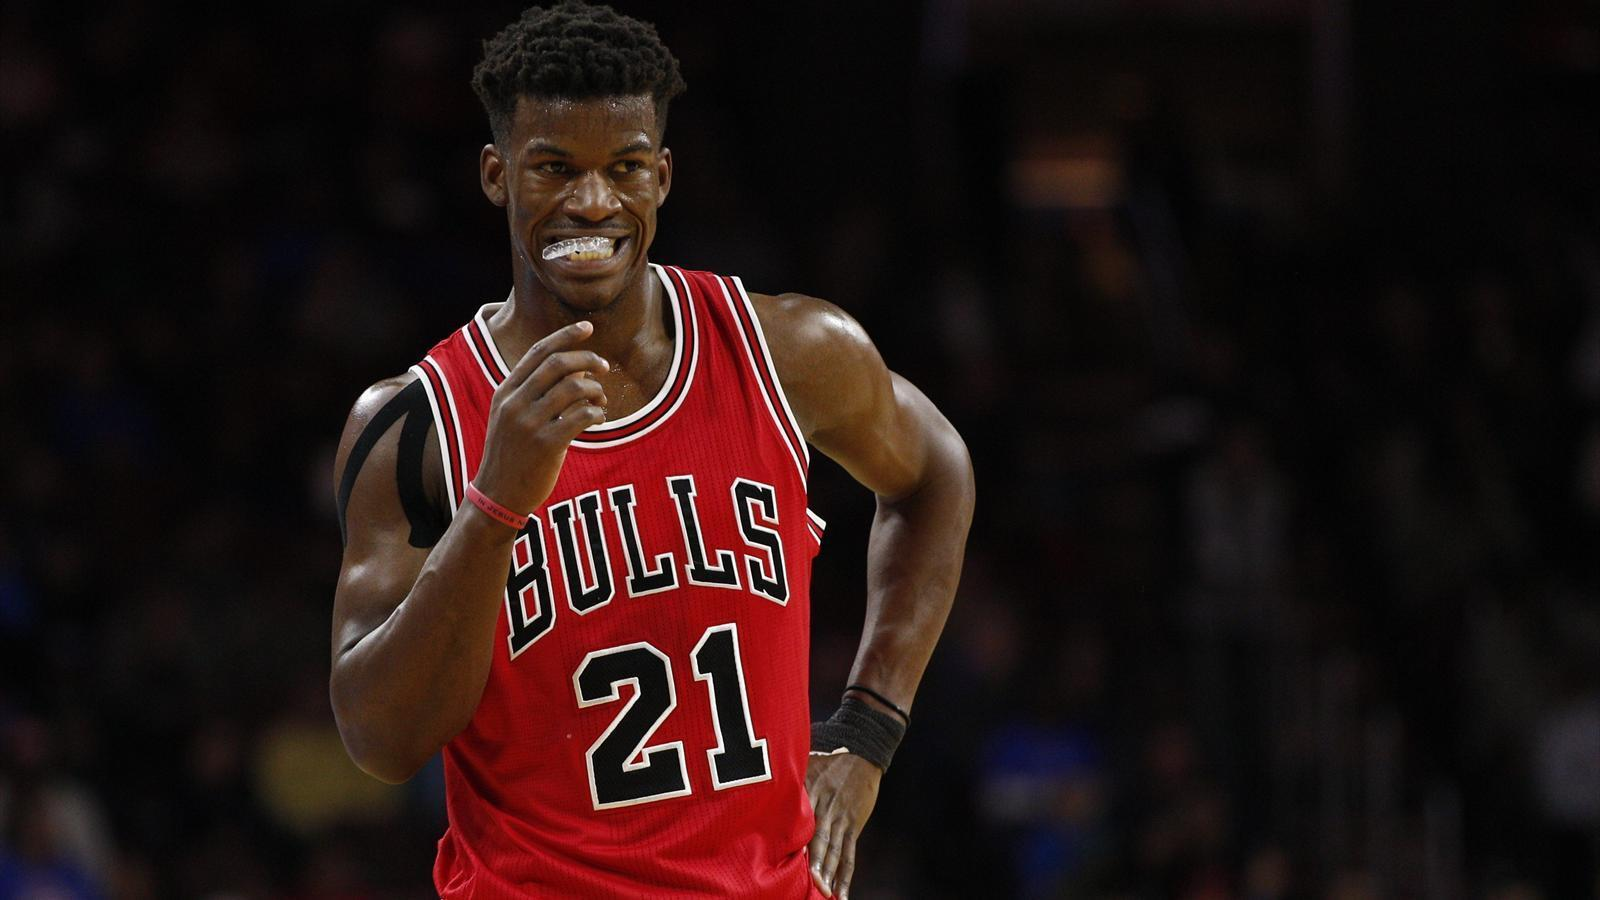 Jimmy Butler Desktop Wallpapers - Wallpaper Cave |Jimmy Butler Dunk Wallpaper